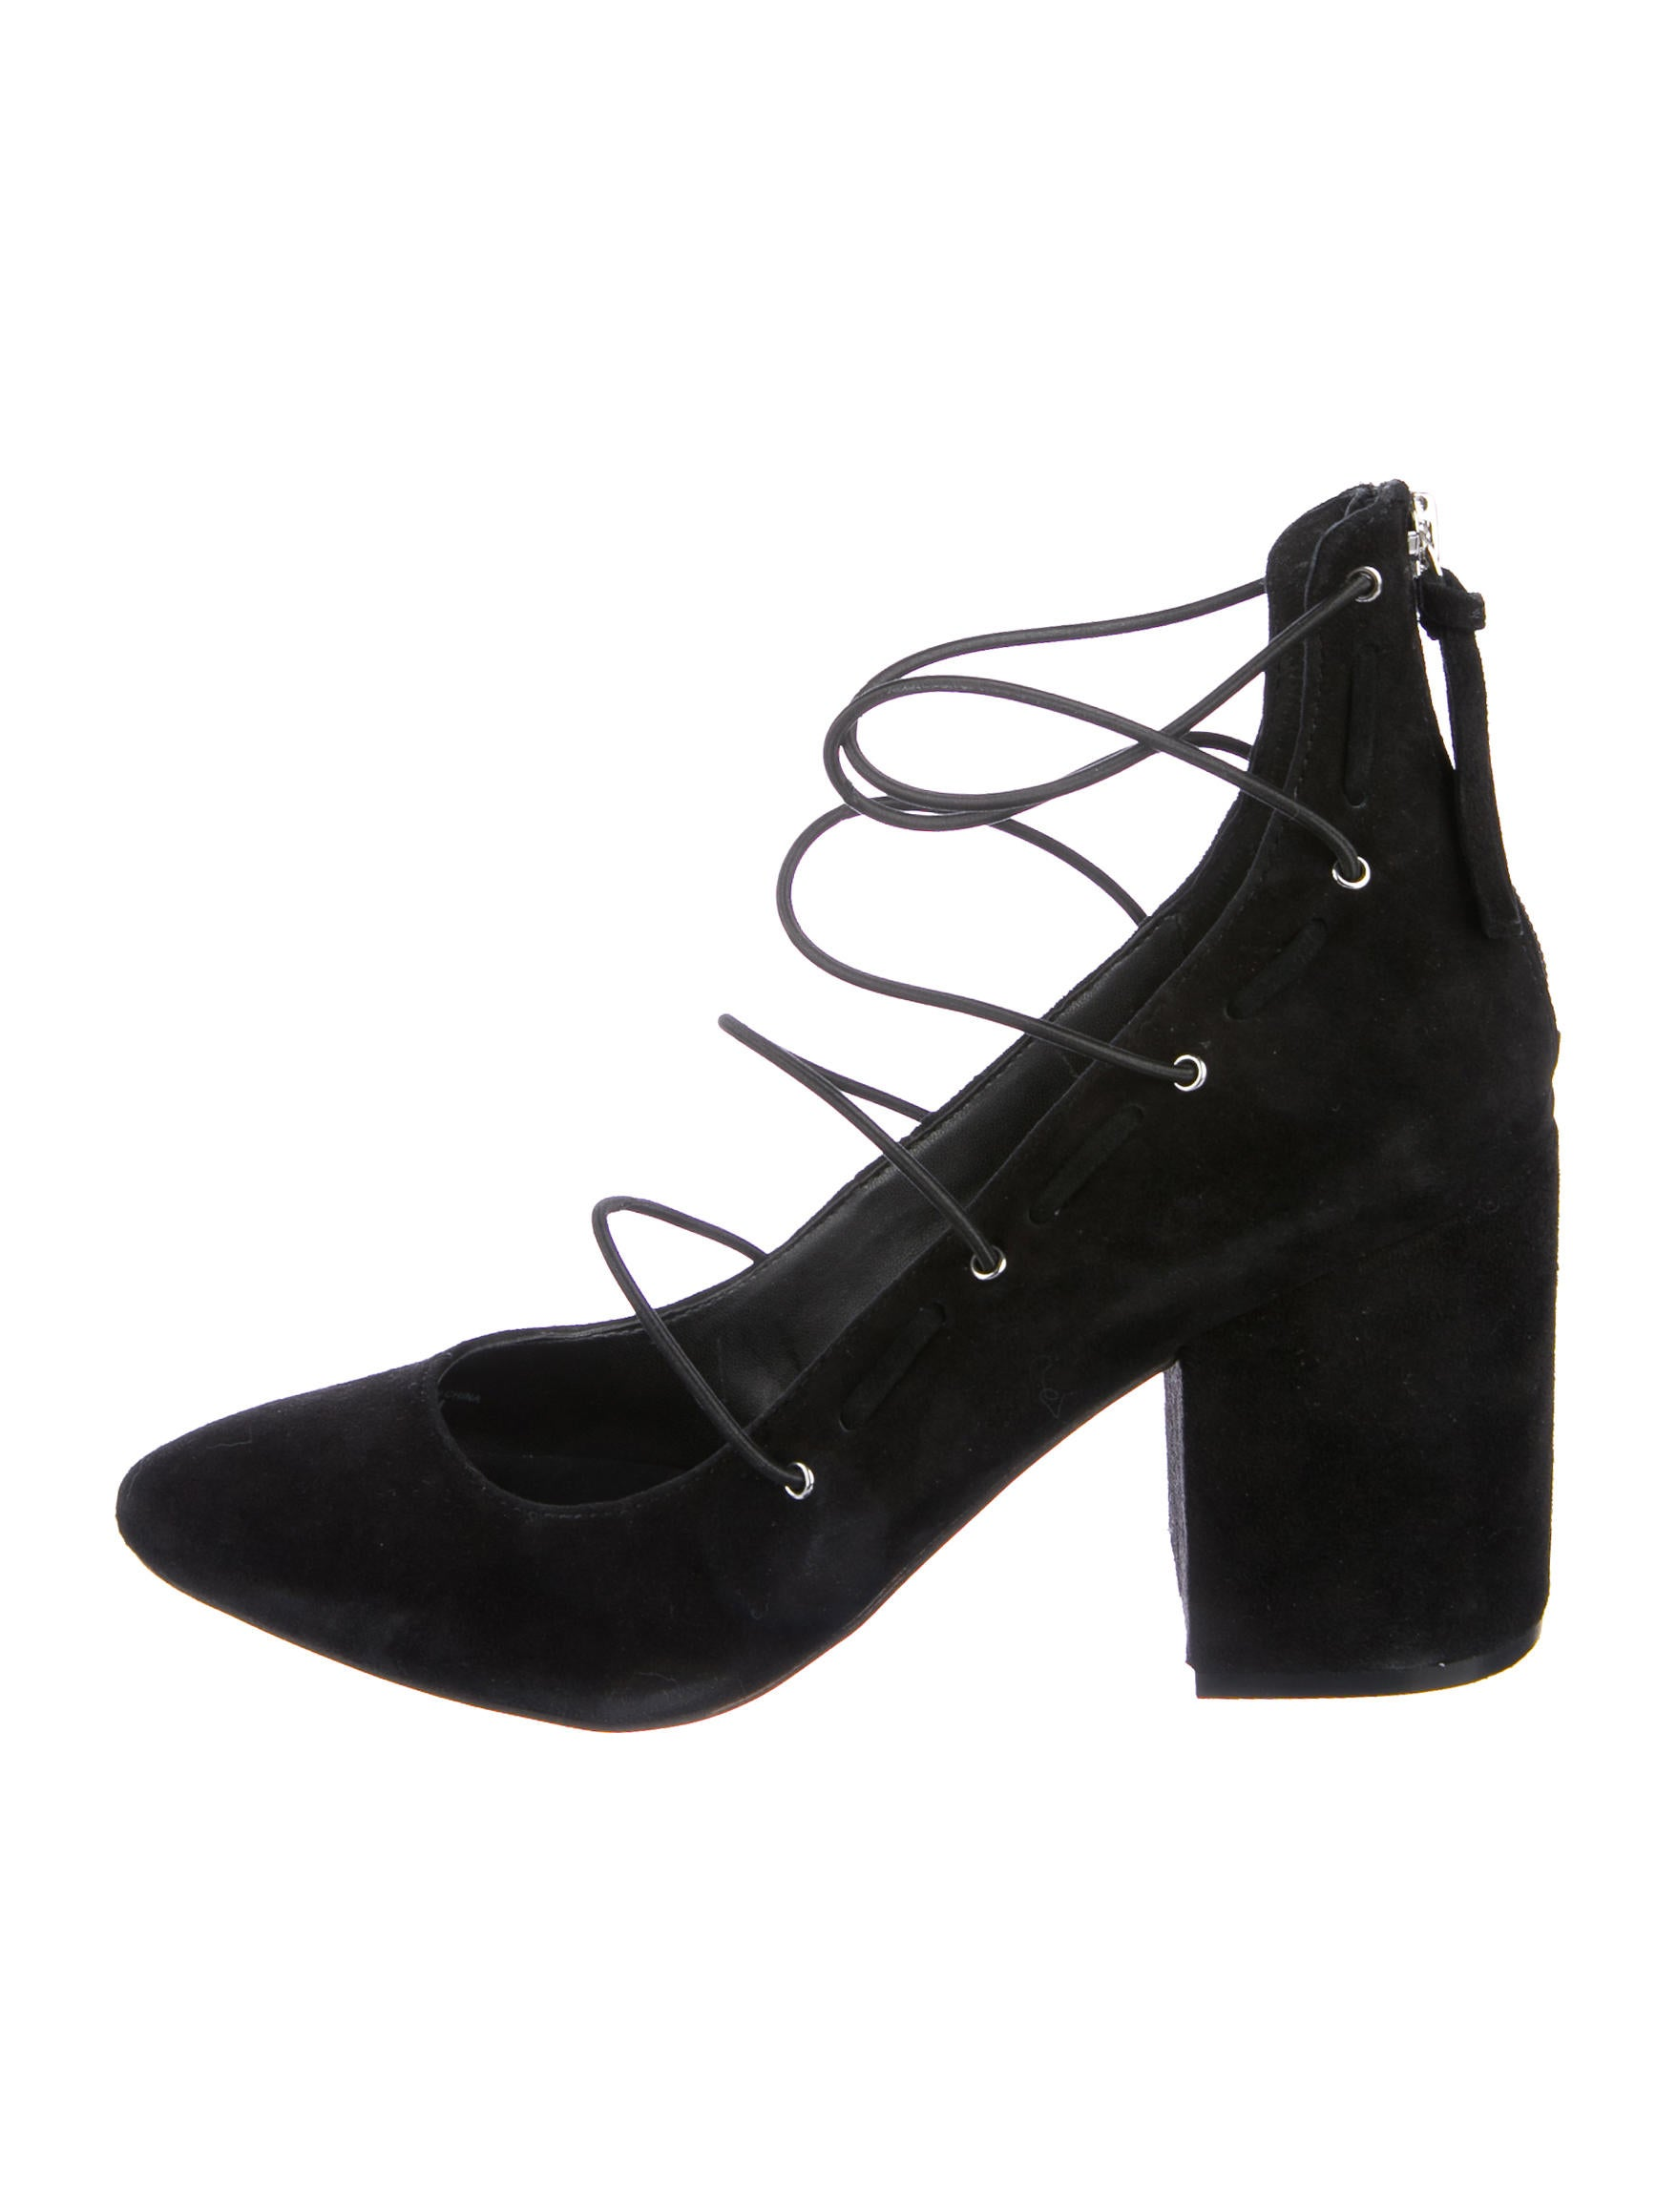 Rebecca Minkoff Multistrap Suede Pumps sale exclusive clearance low price free shipping wide range of shop for online cheapest price cheap online dmeT2